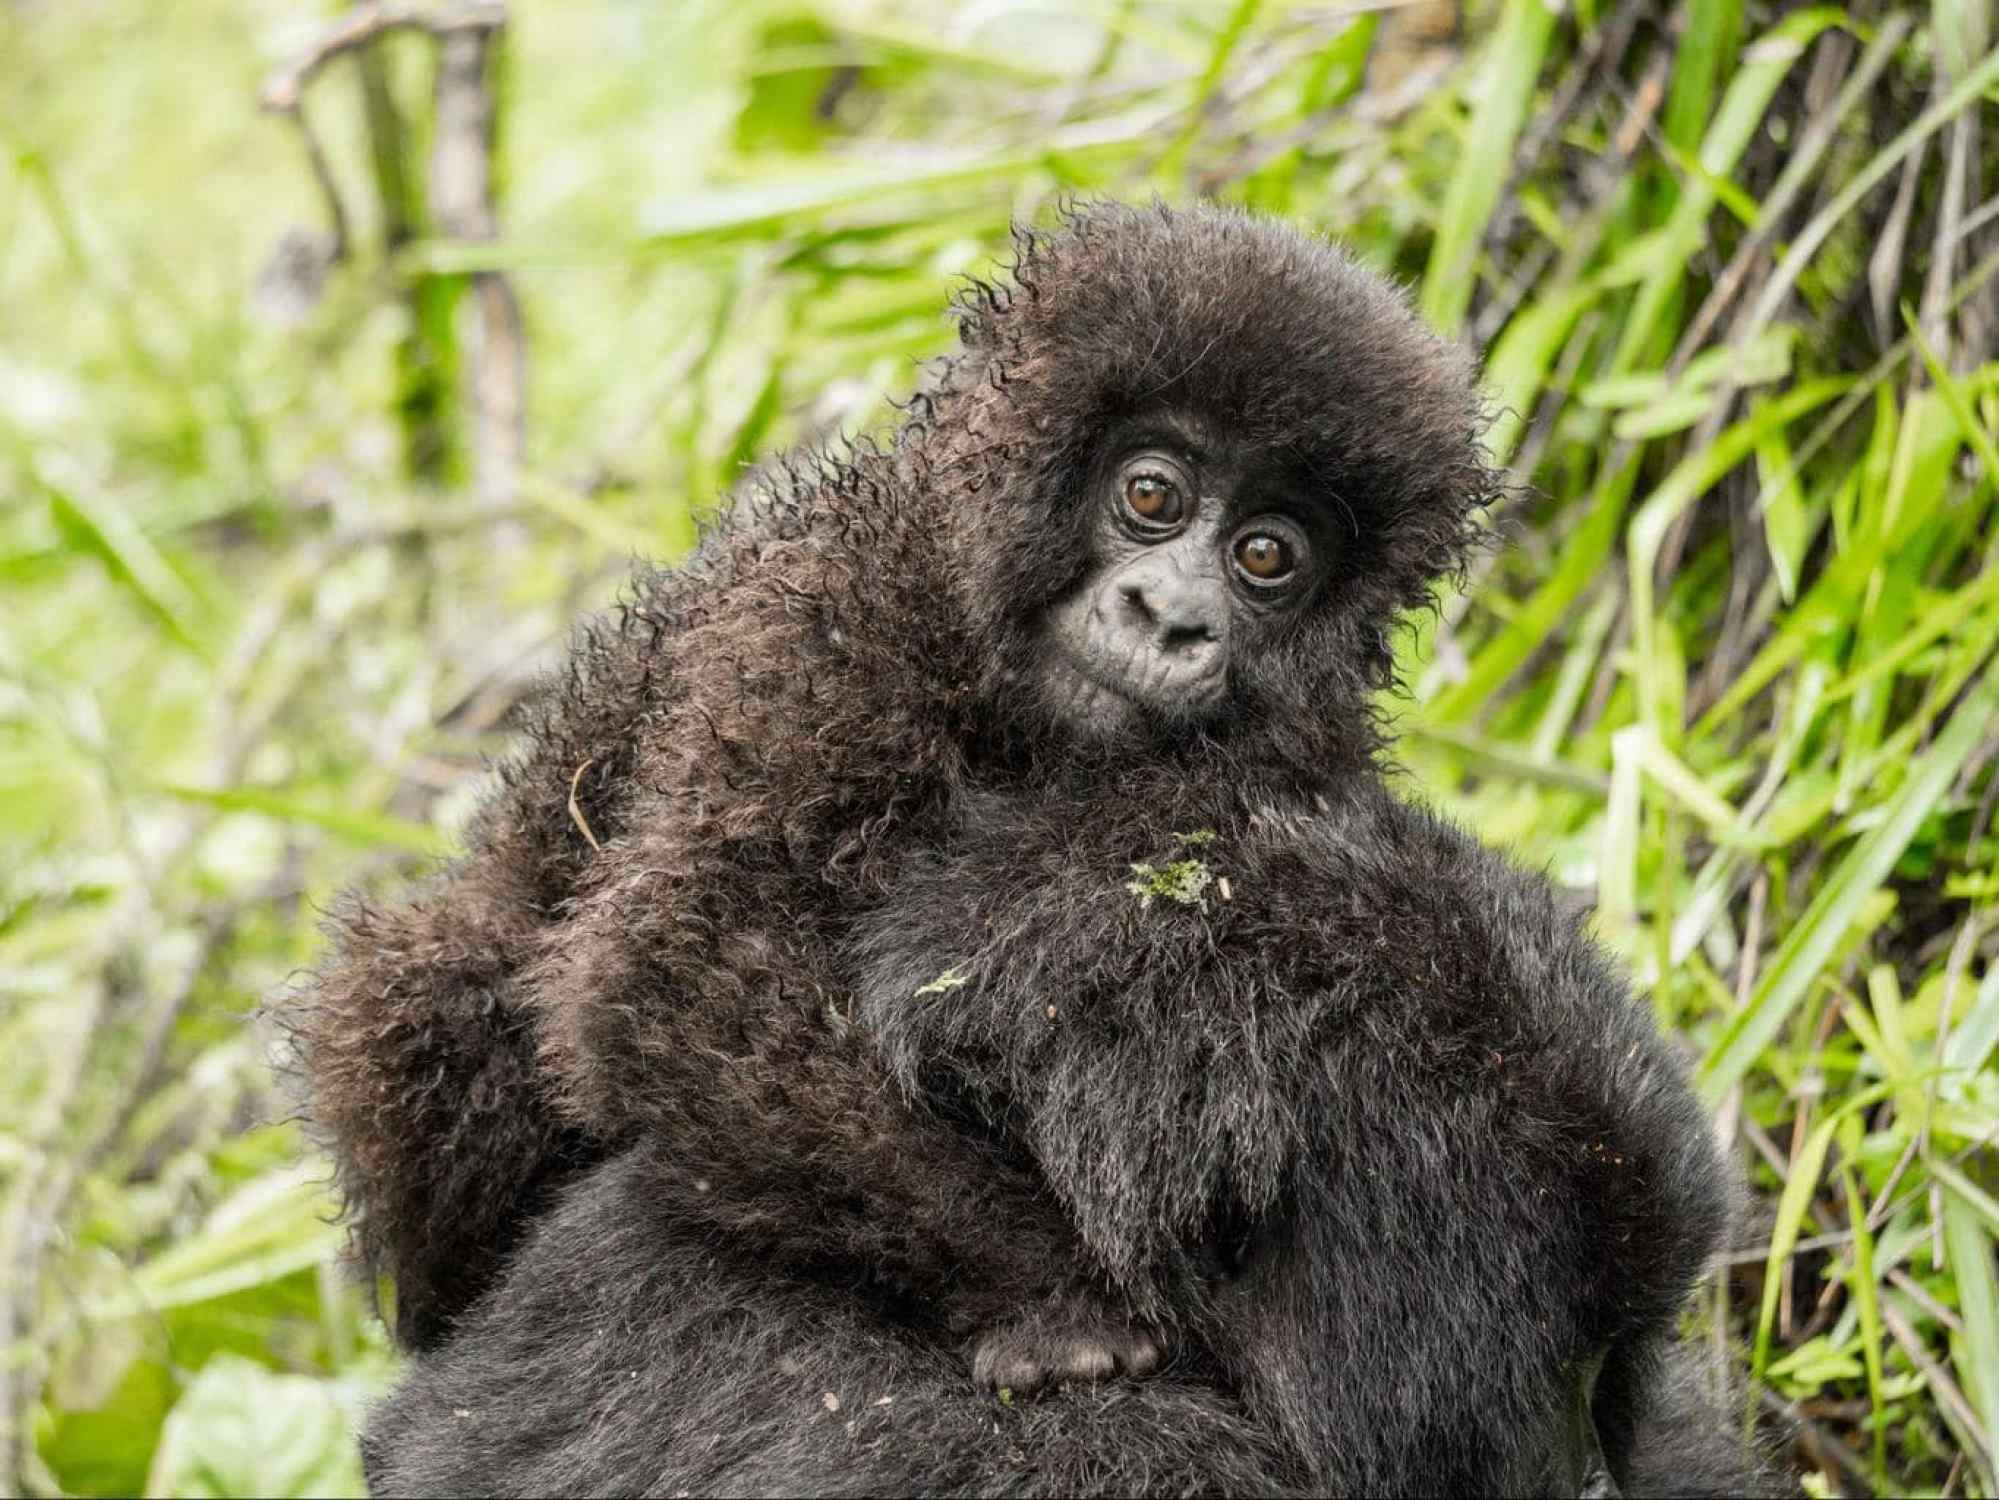 The ball of furry hair of a baby mountain gorilla